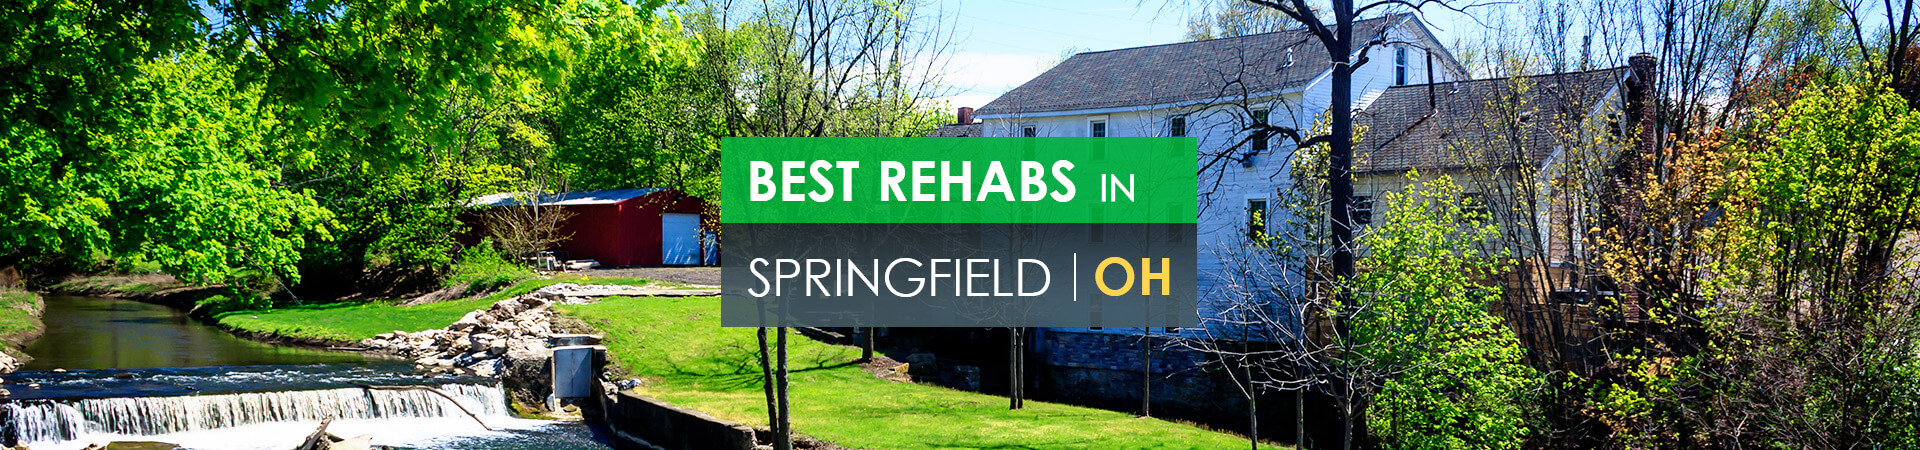 Best rehabs in Springfield, OH